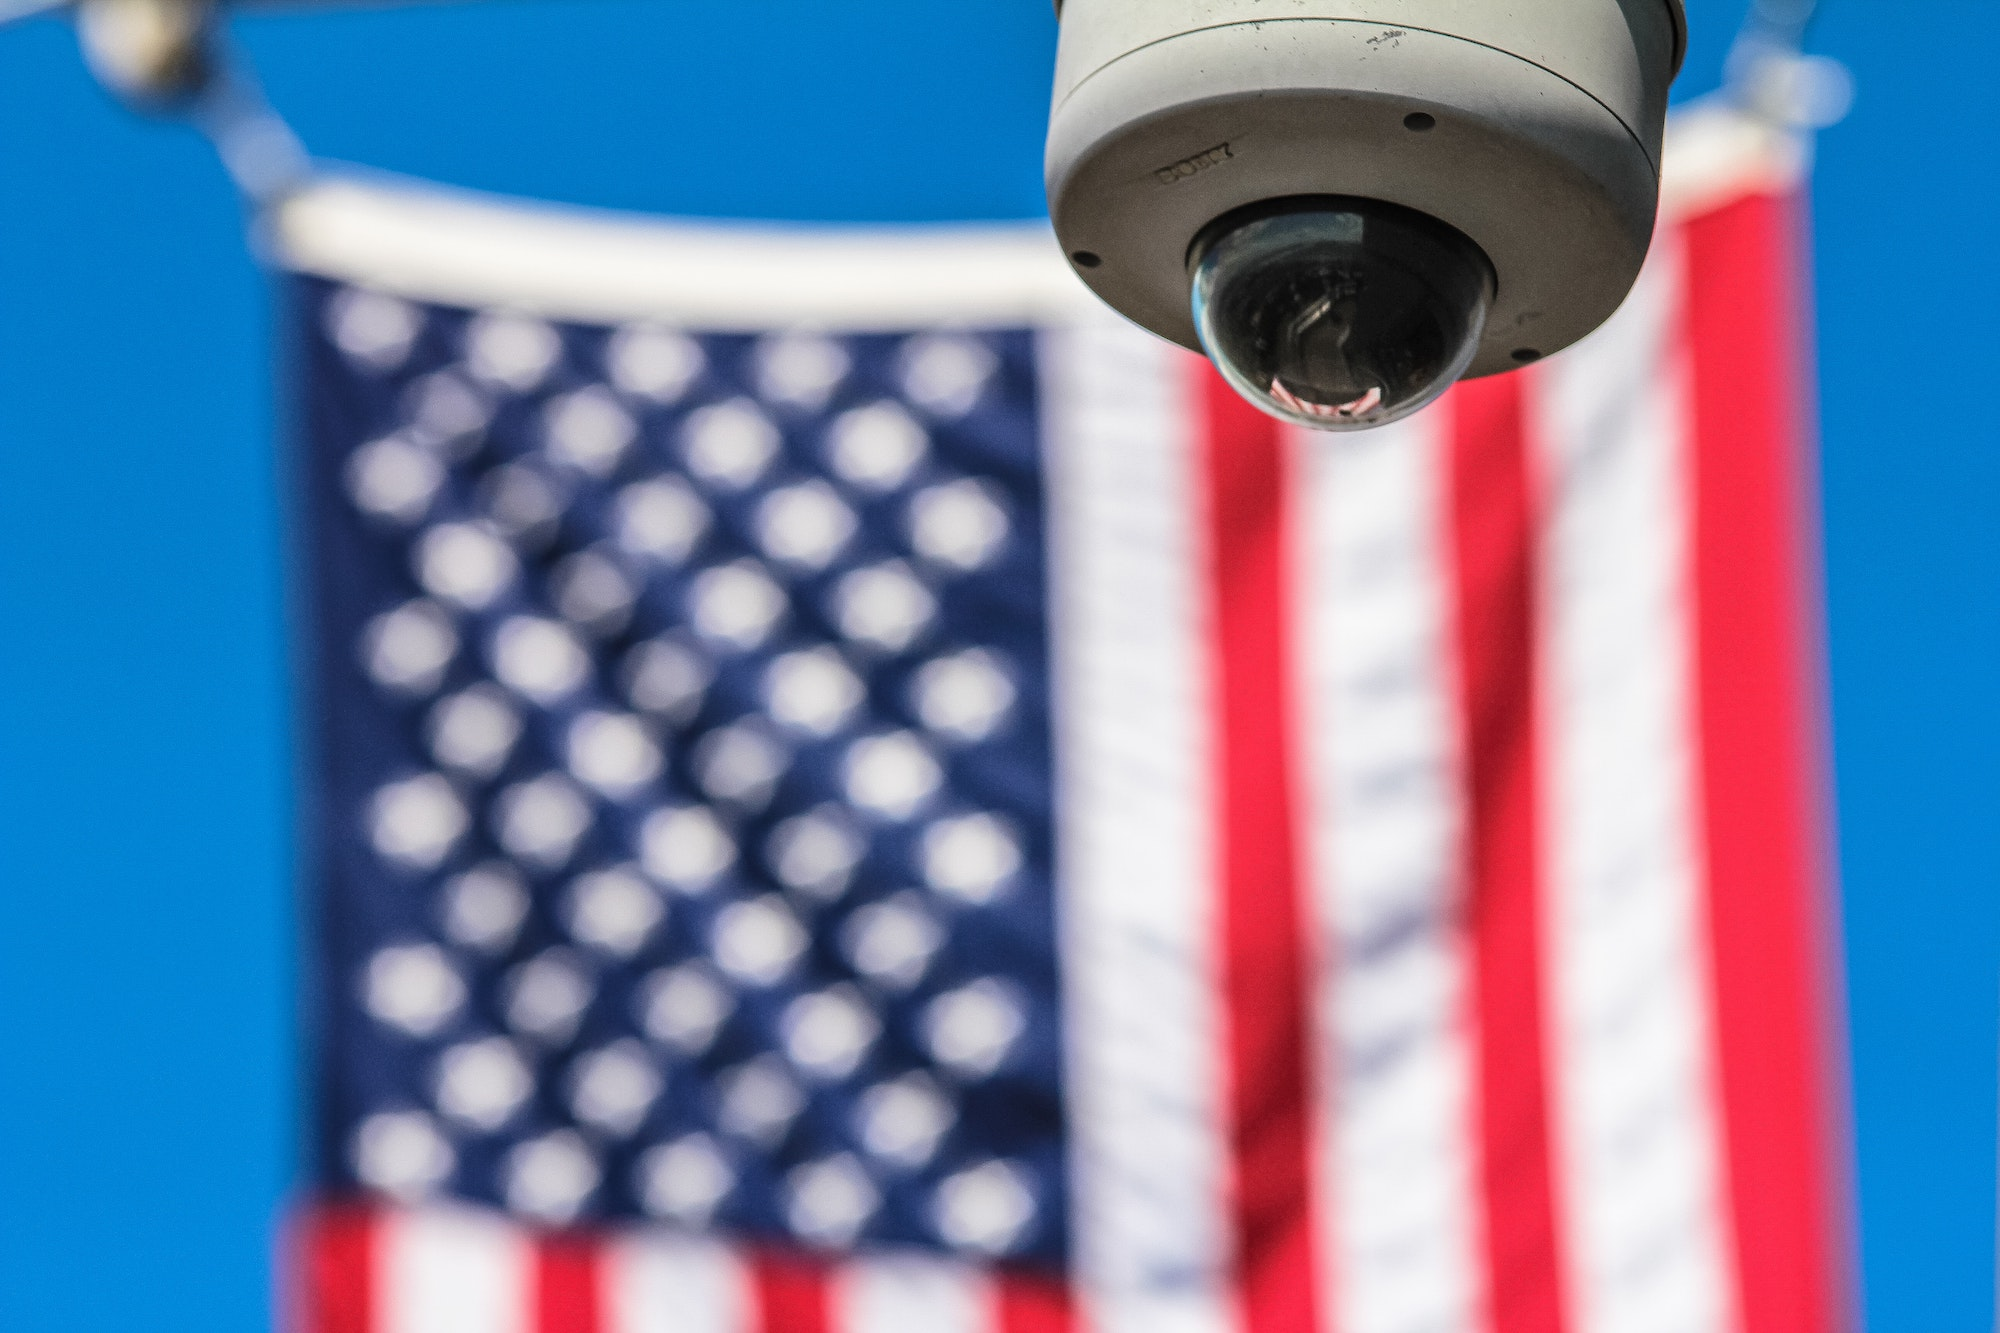 security camera with american flag in the background